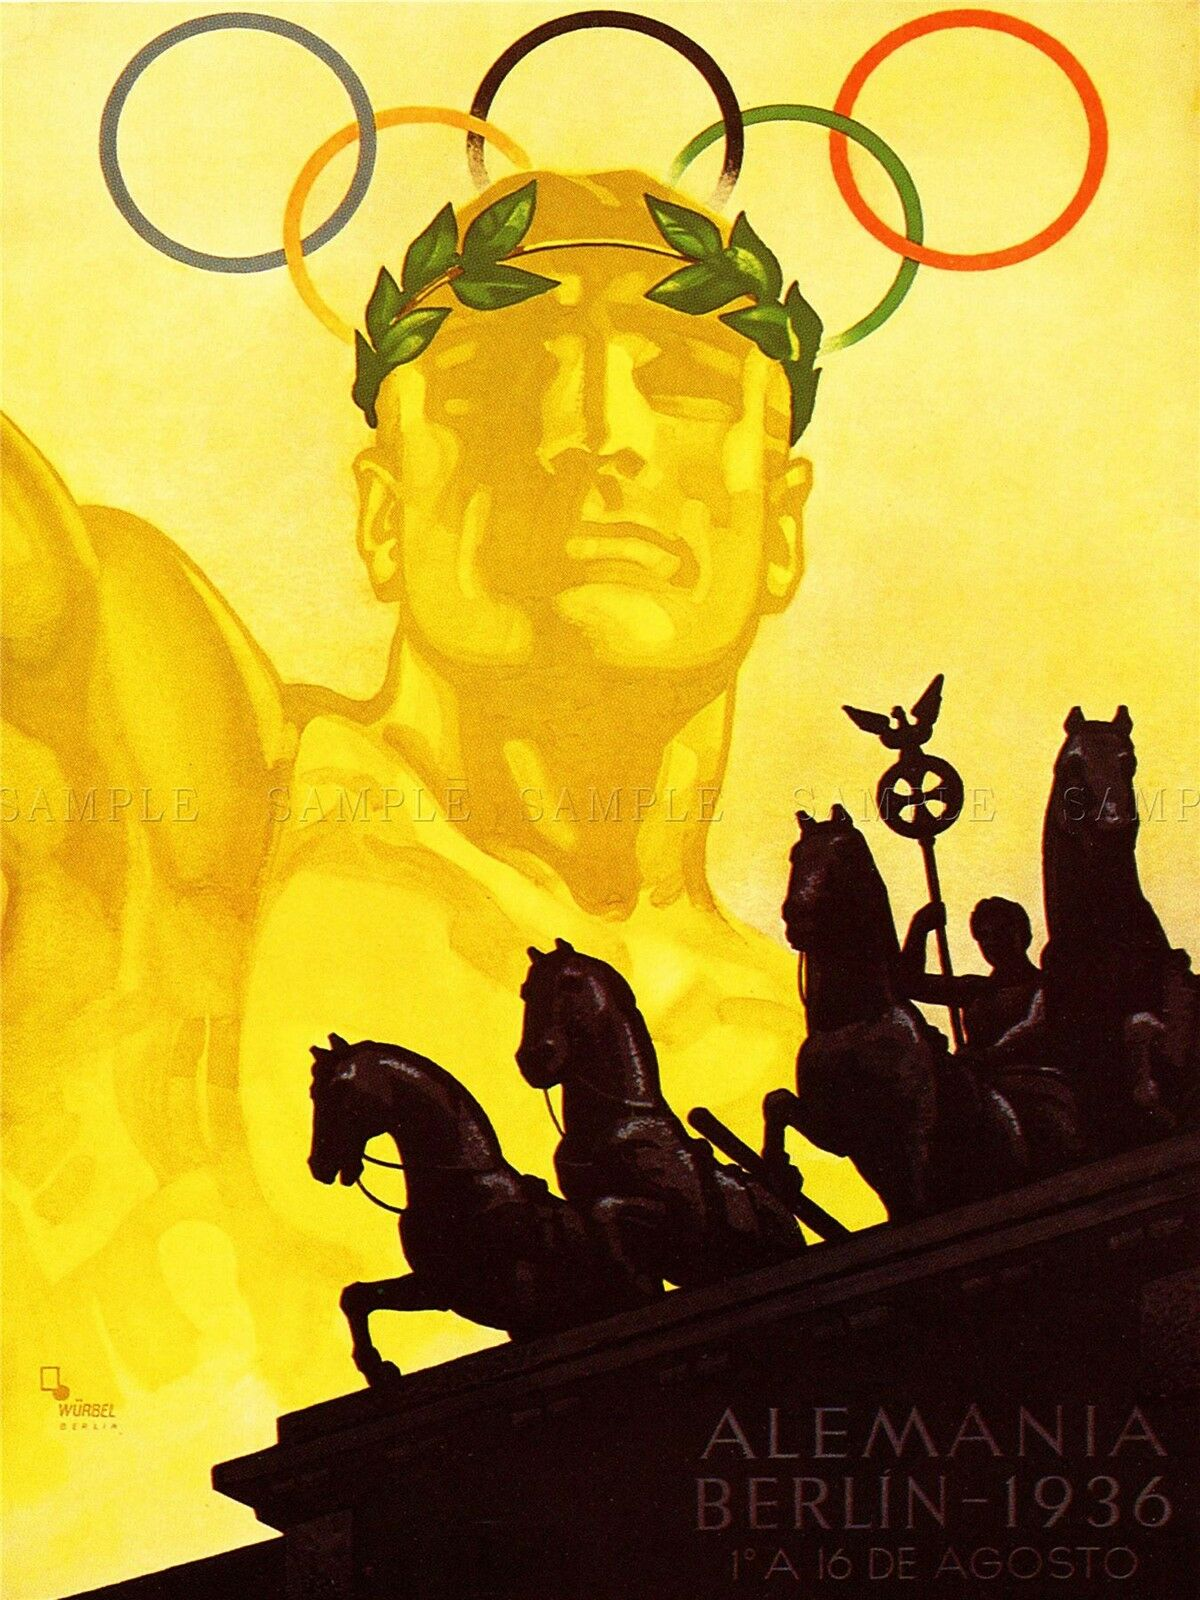 ART PRINT POSTER SPORT ADVERT WINTER OLYMPIC GAMES GRENOBLE FRANCE NOFL1056